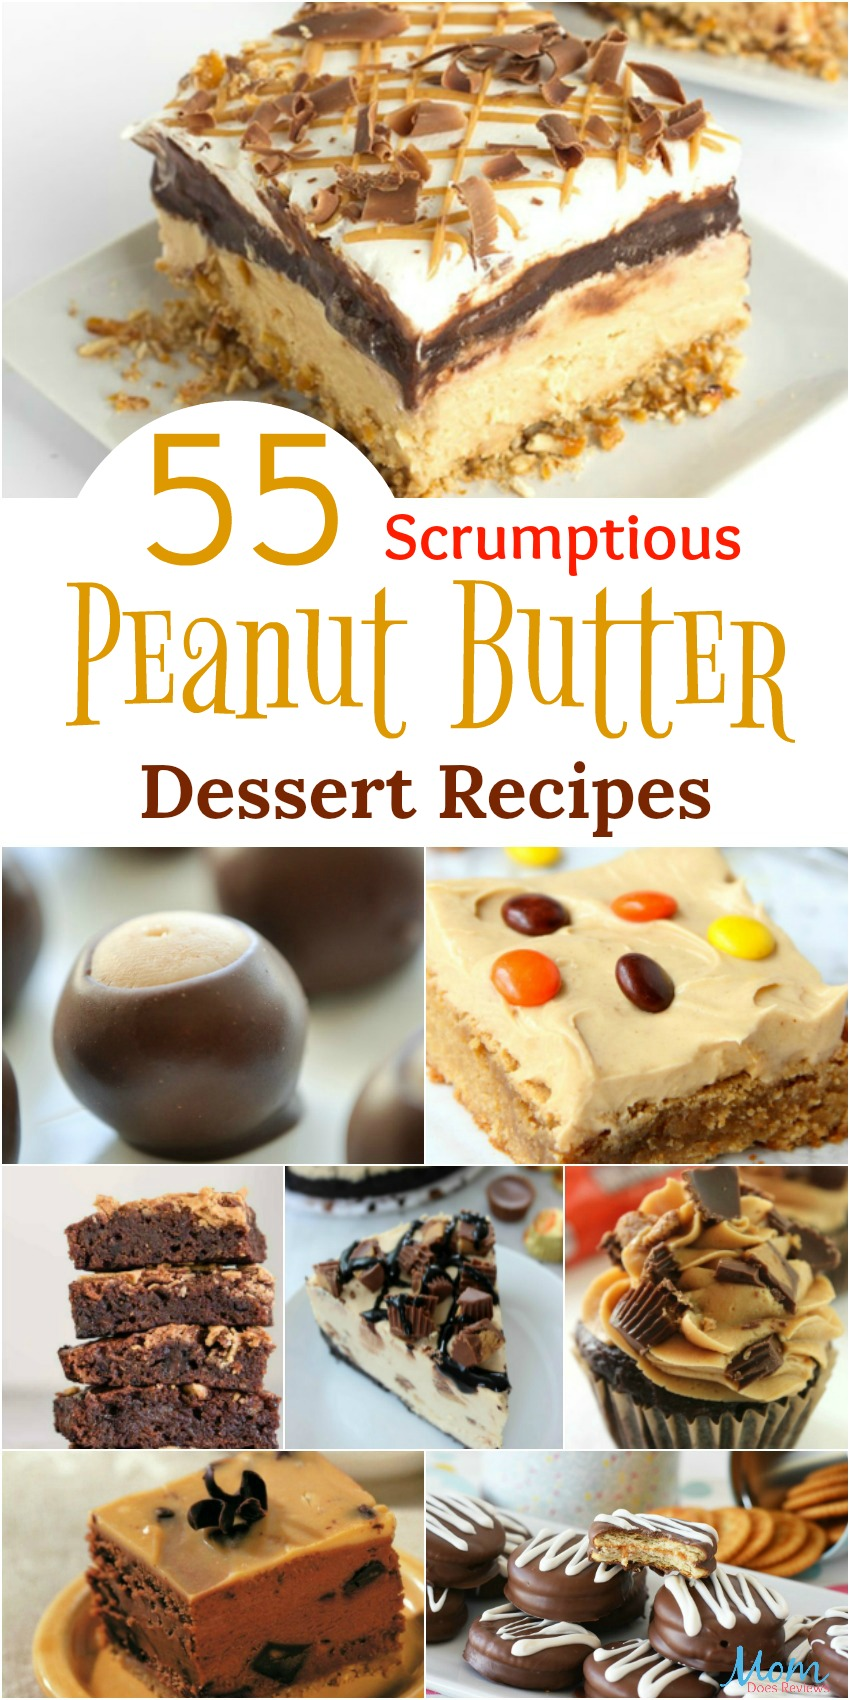 55 Scrumptious Peanut Butter Dessert Recipes that will Make you Drool {Part 1} #desserts #sweets #peanutbutter #recipes #getinmybelly